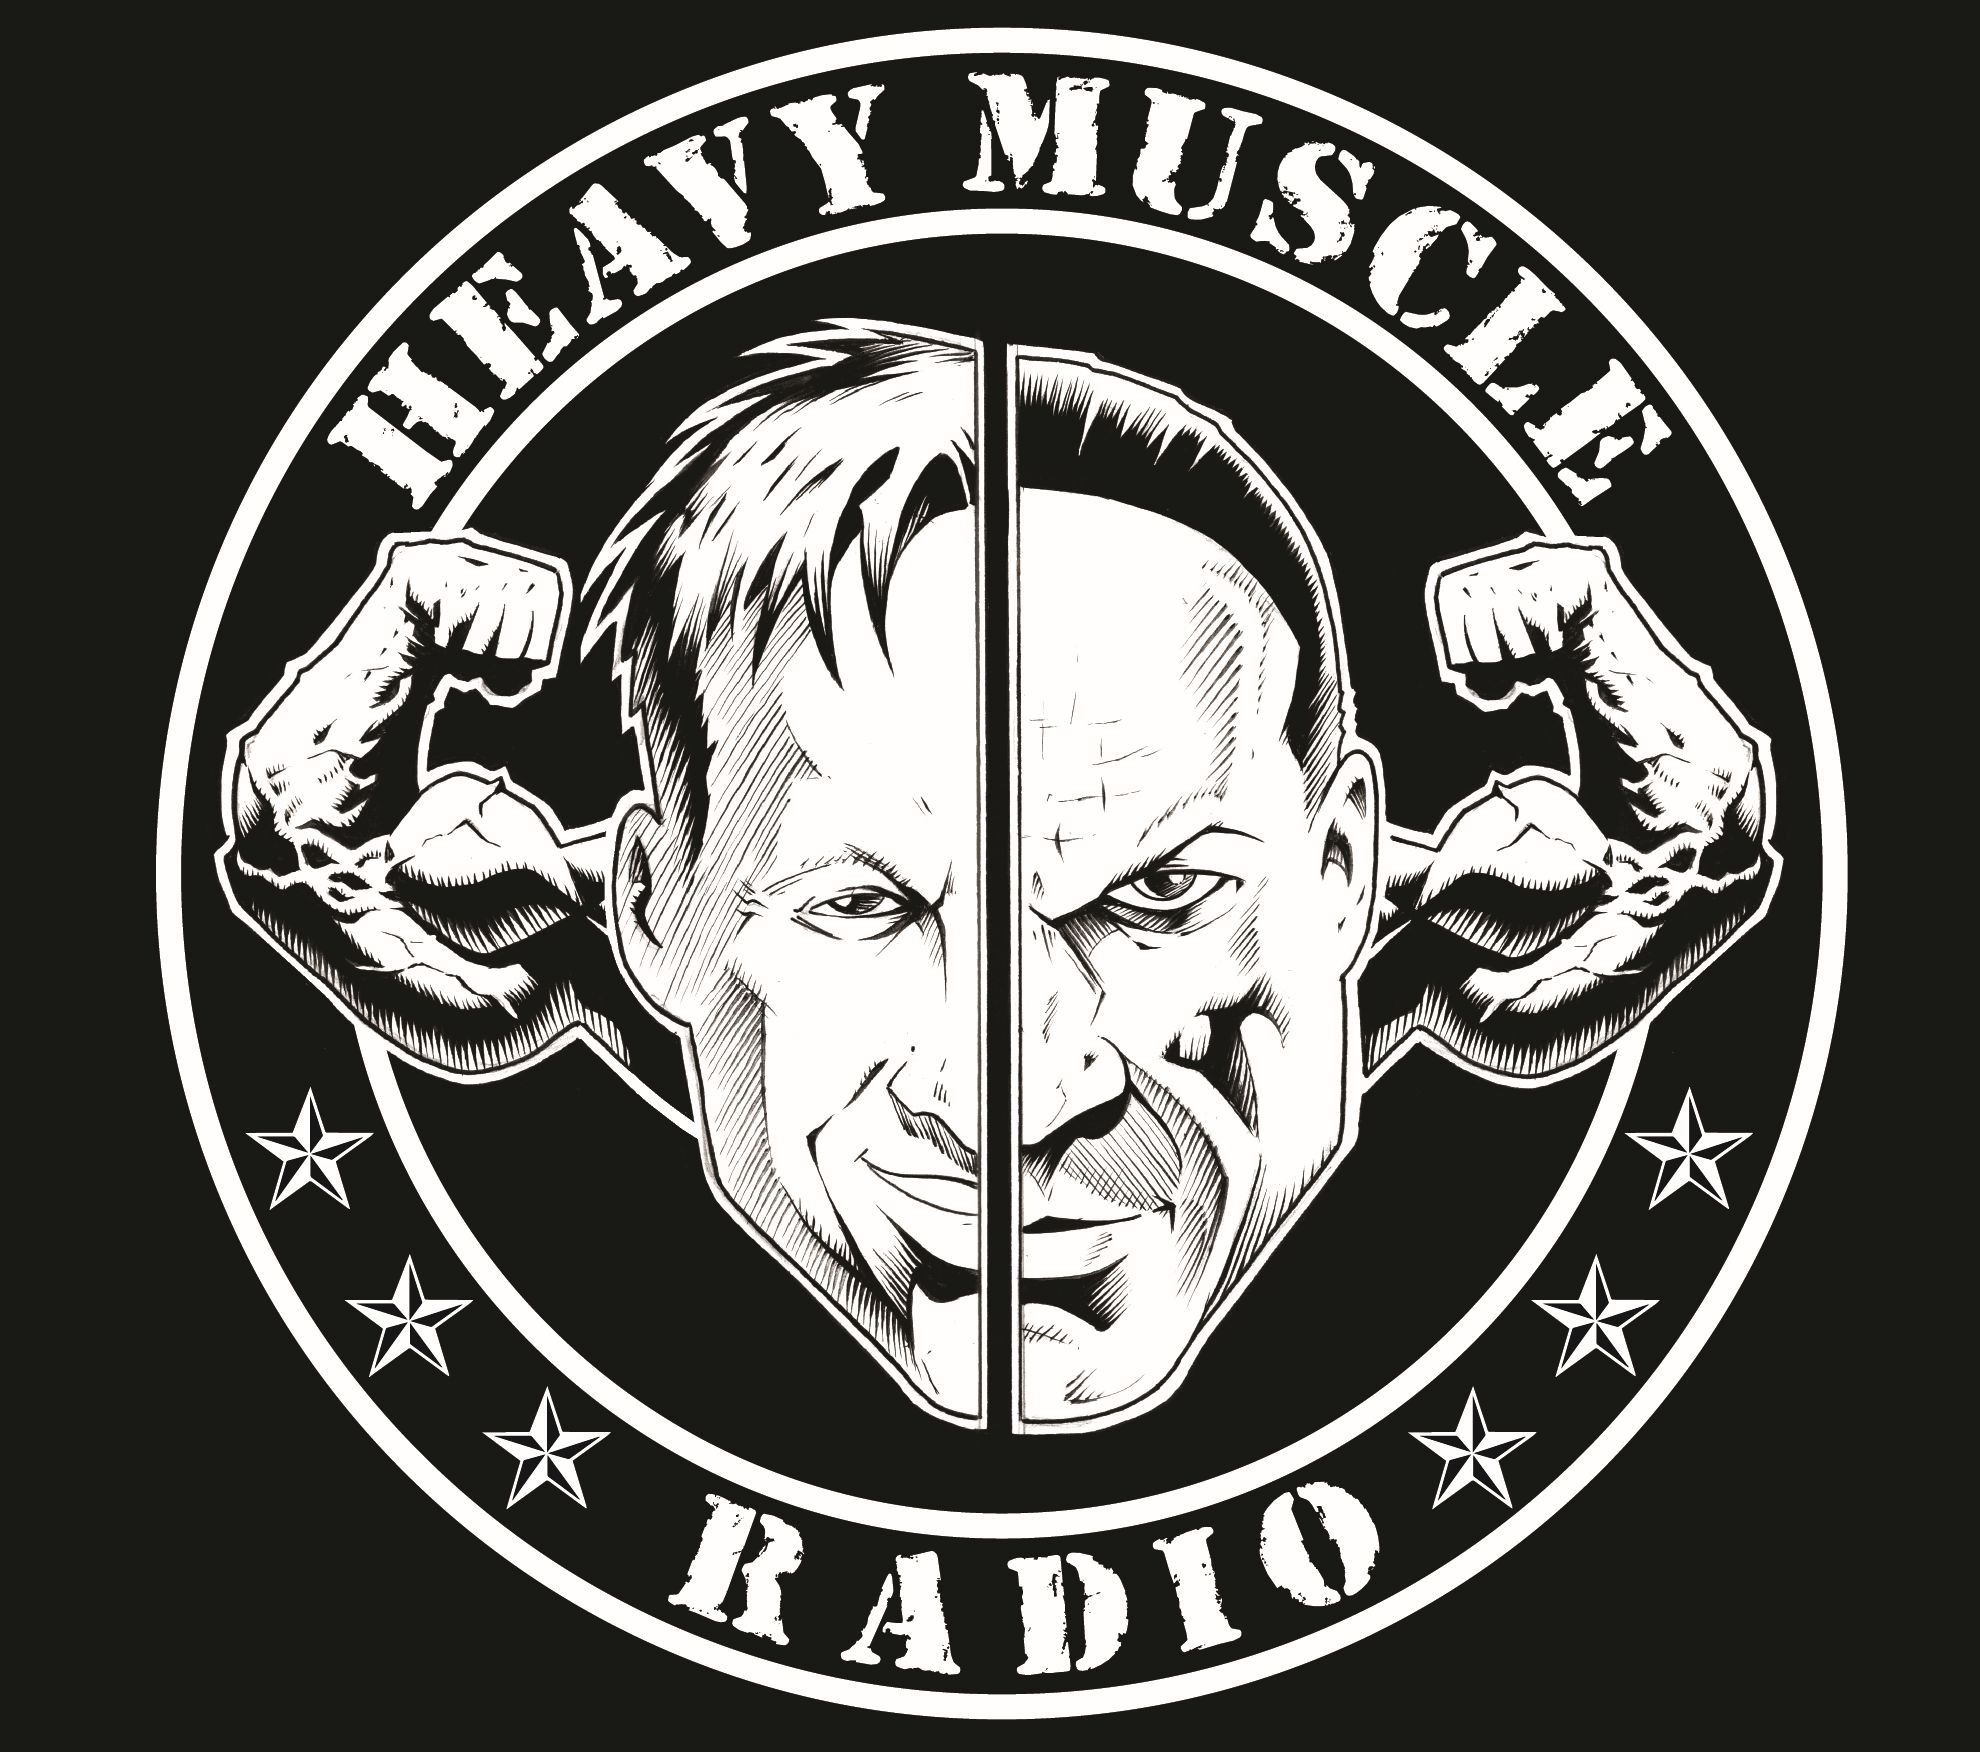 HeavyMuscleRadio